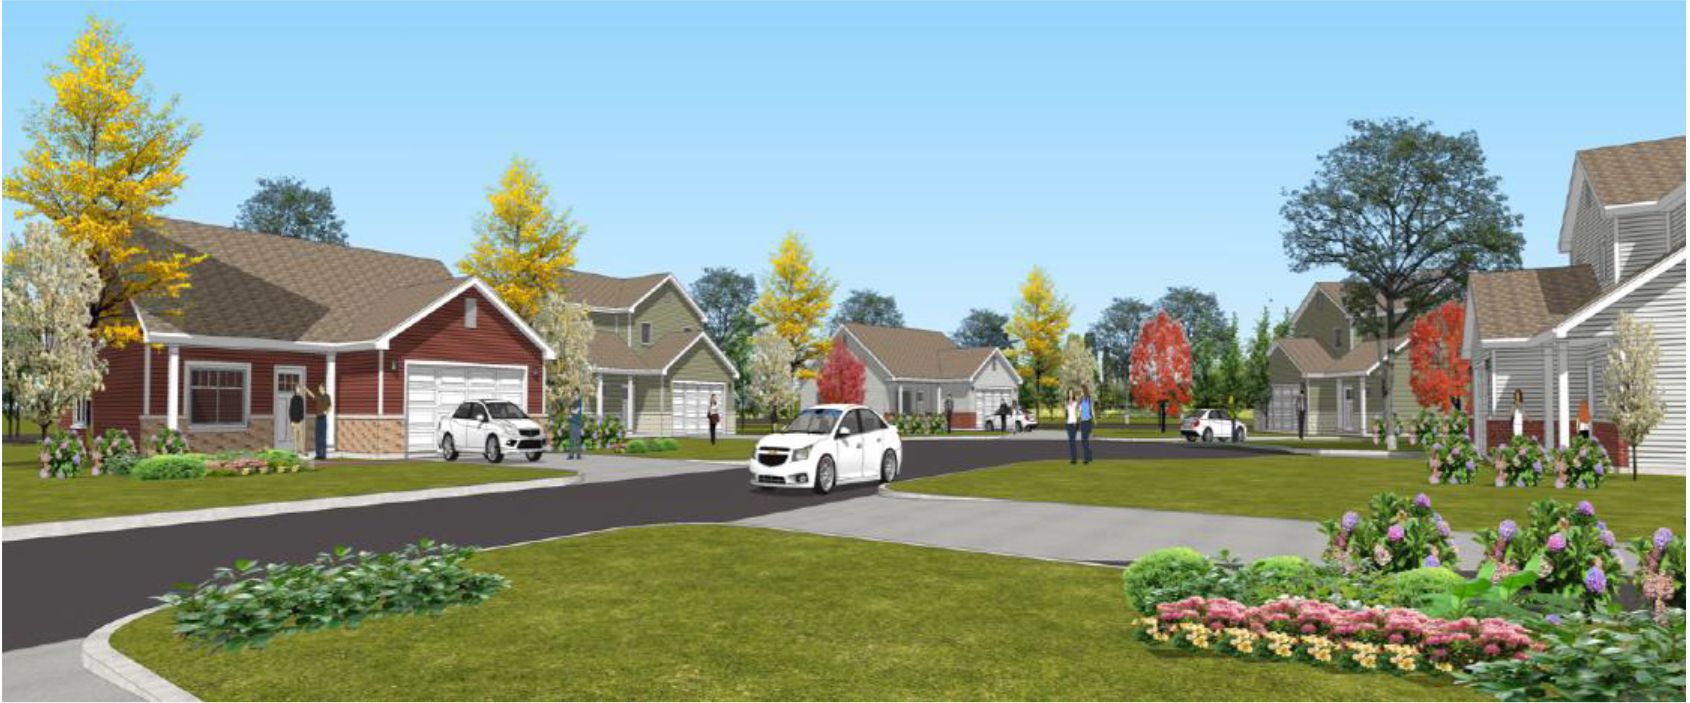 Macoupin Homes – Scattered Site Homes, Macoupin County, IL